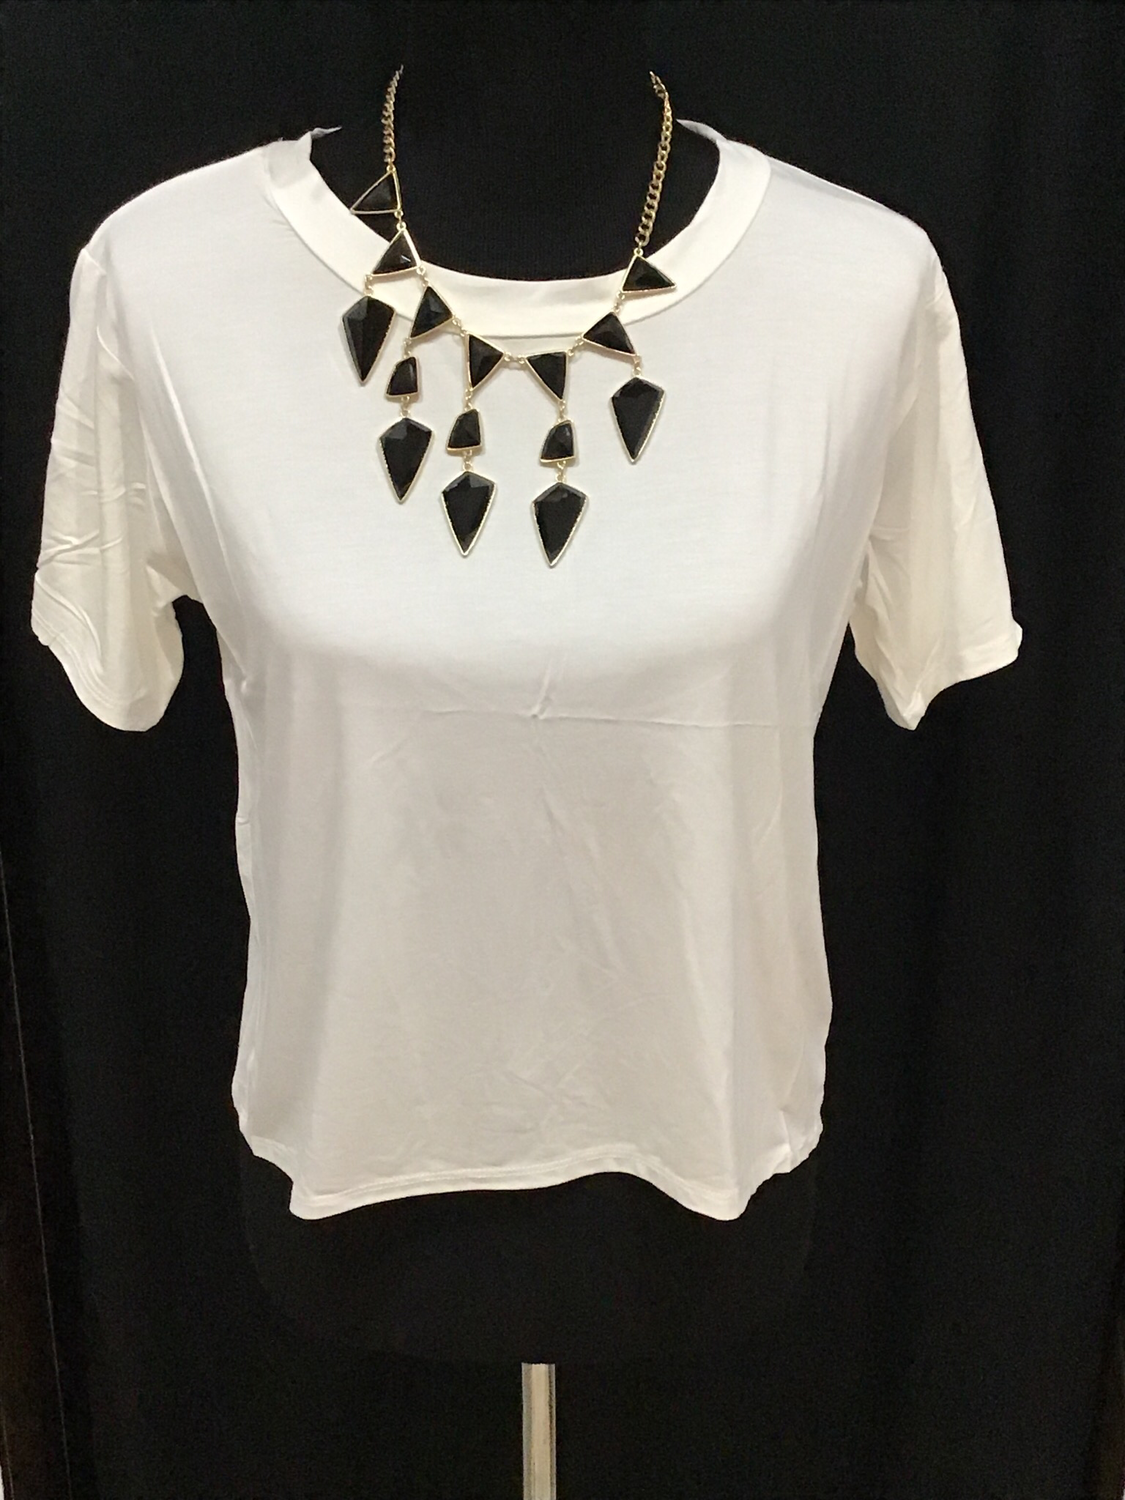 Cream crop top with open back detail